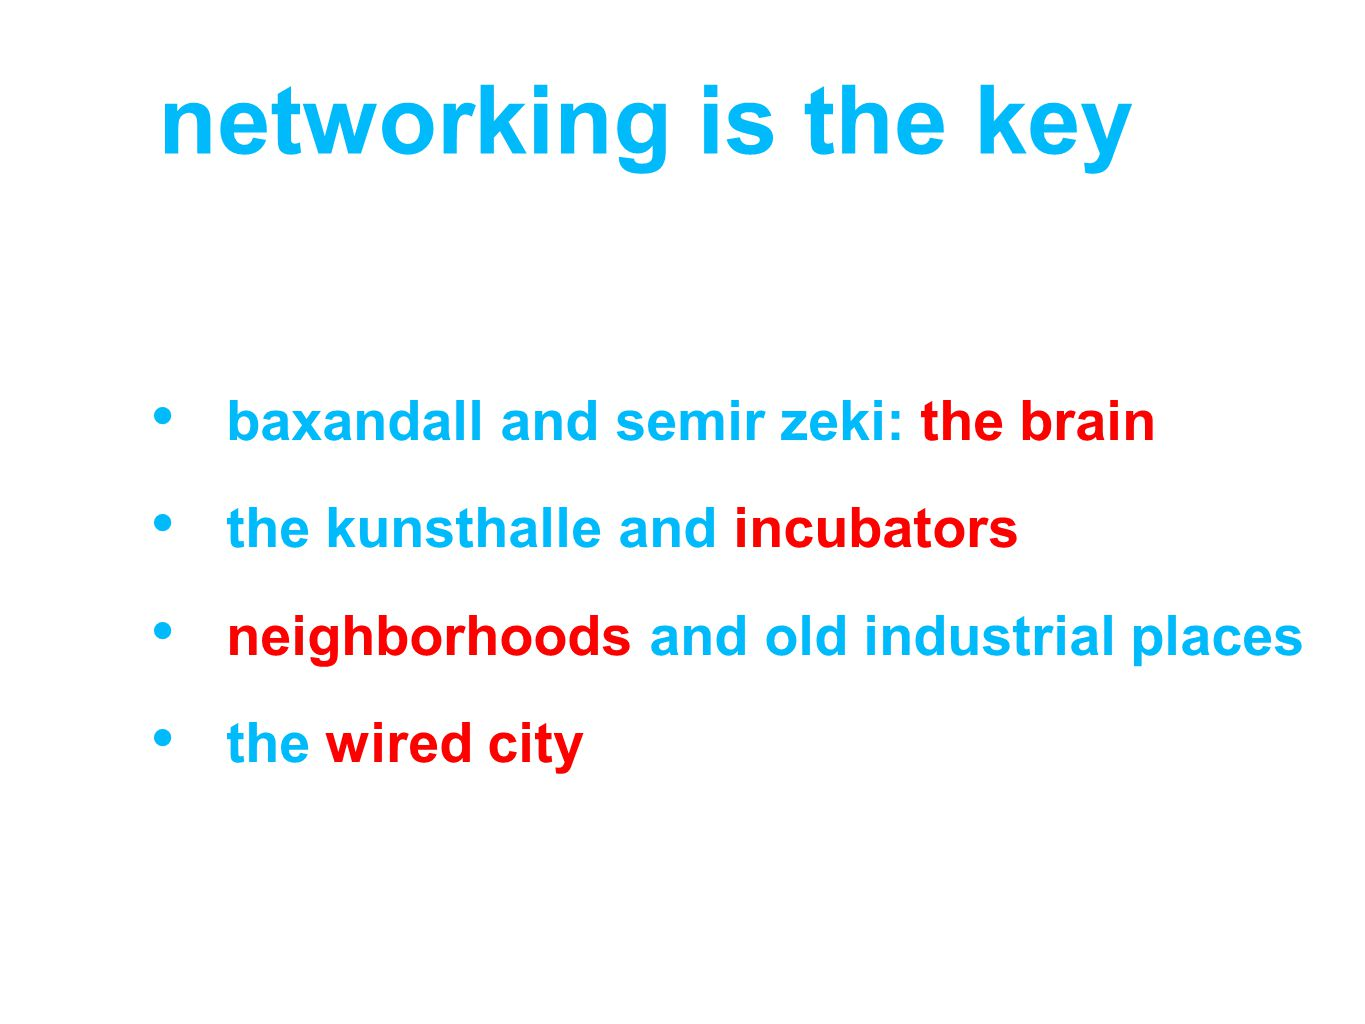 baxandall and semir zeki: the brain the kunsthalle and incubators neighborhoods and old industrial places the wired city networking is the key